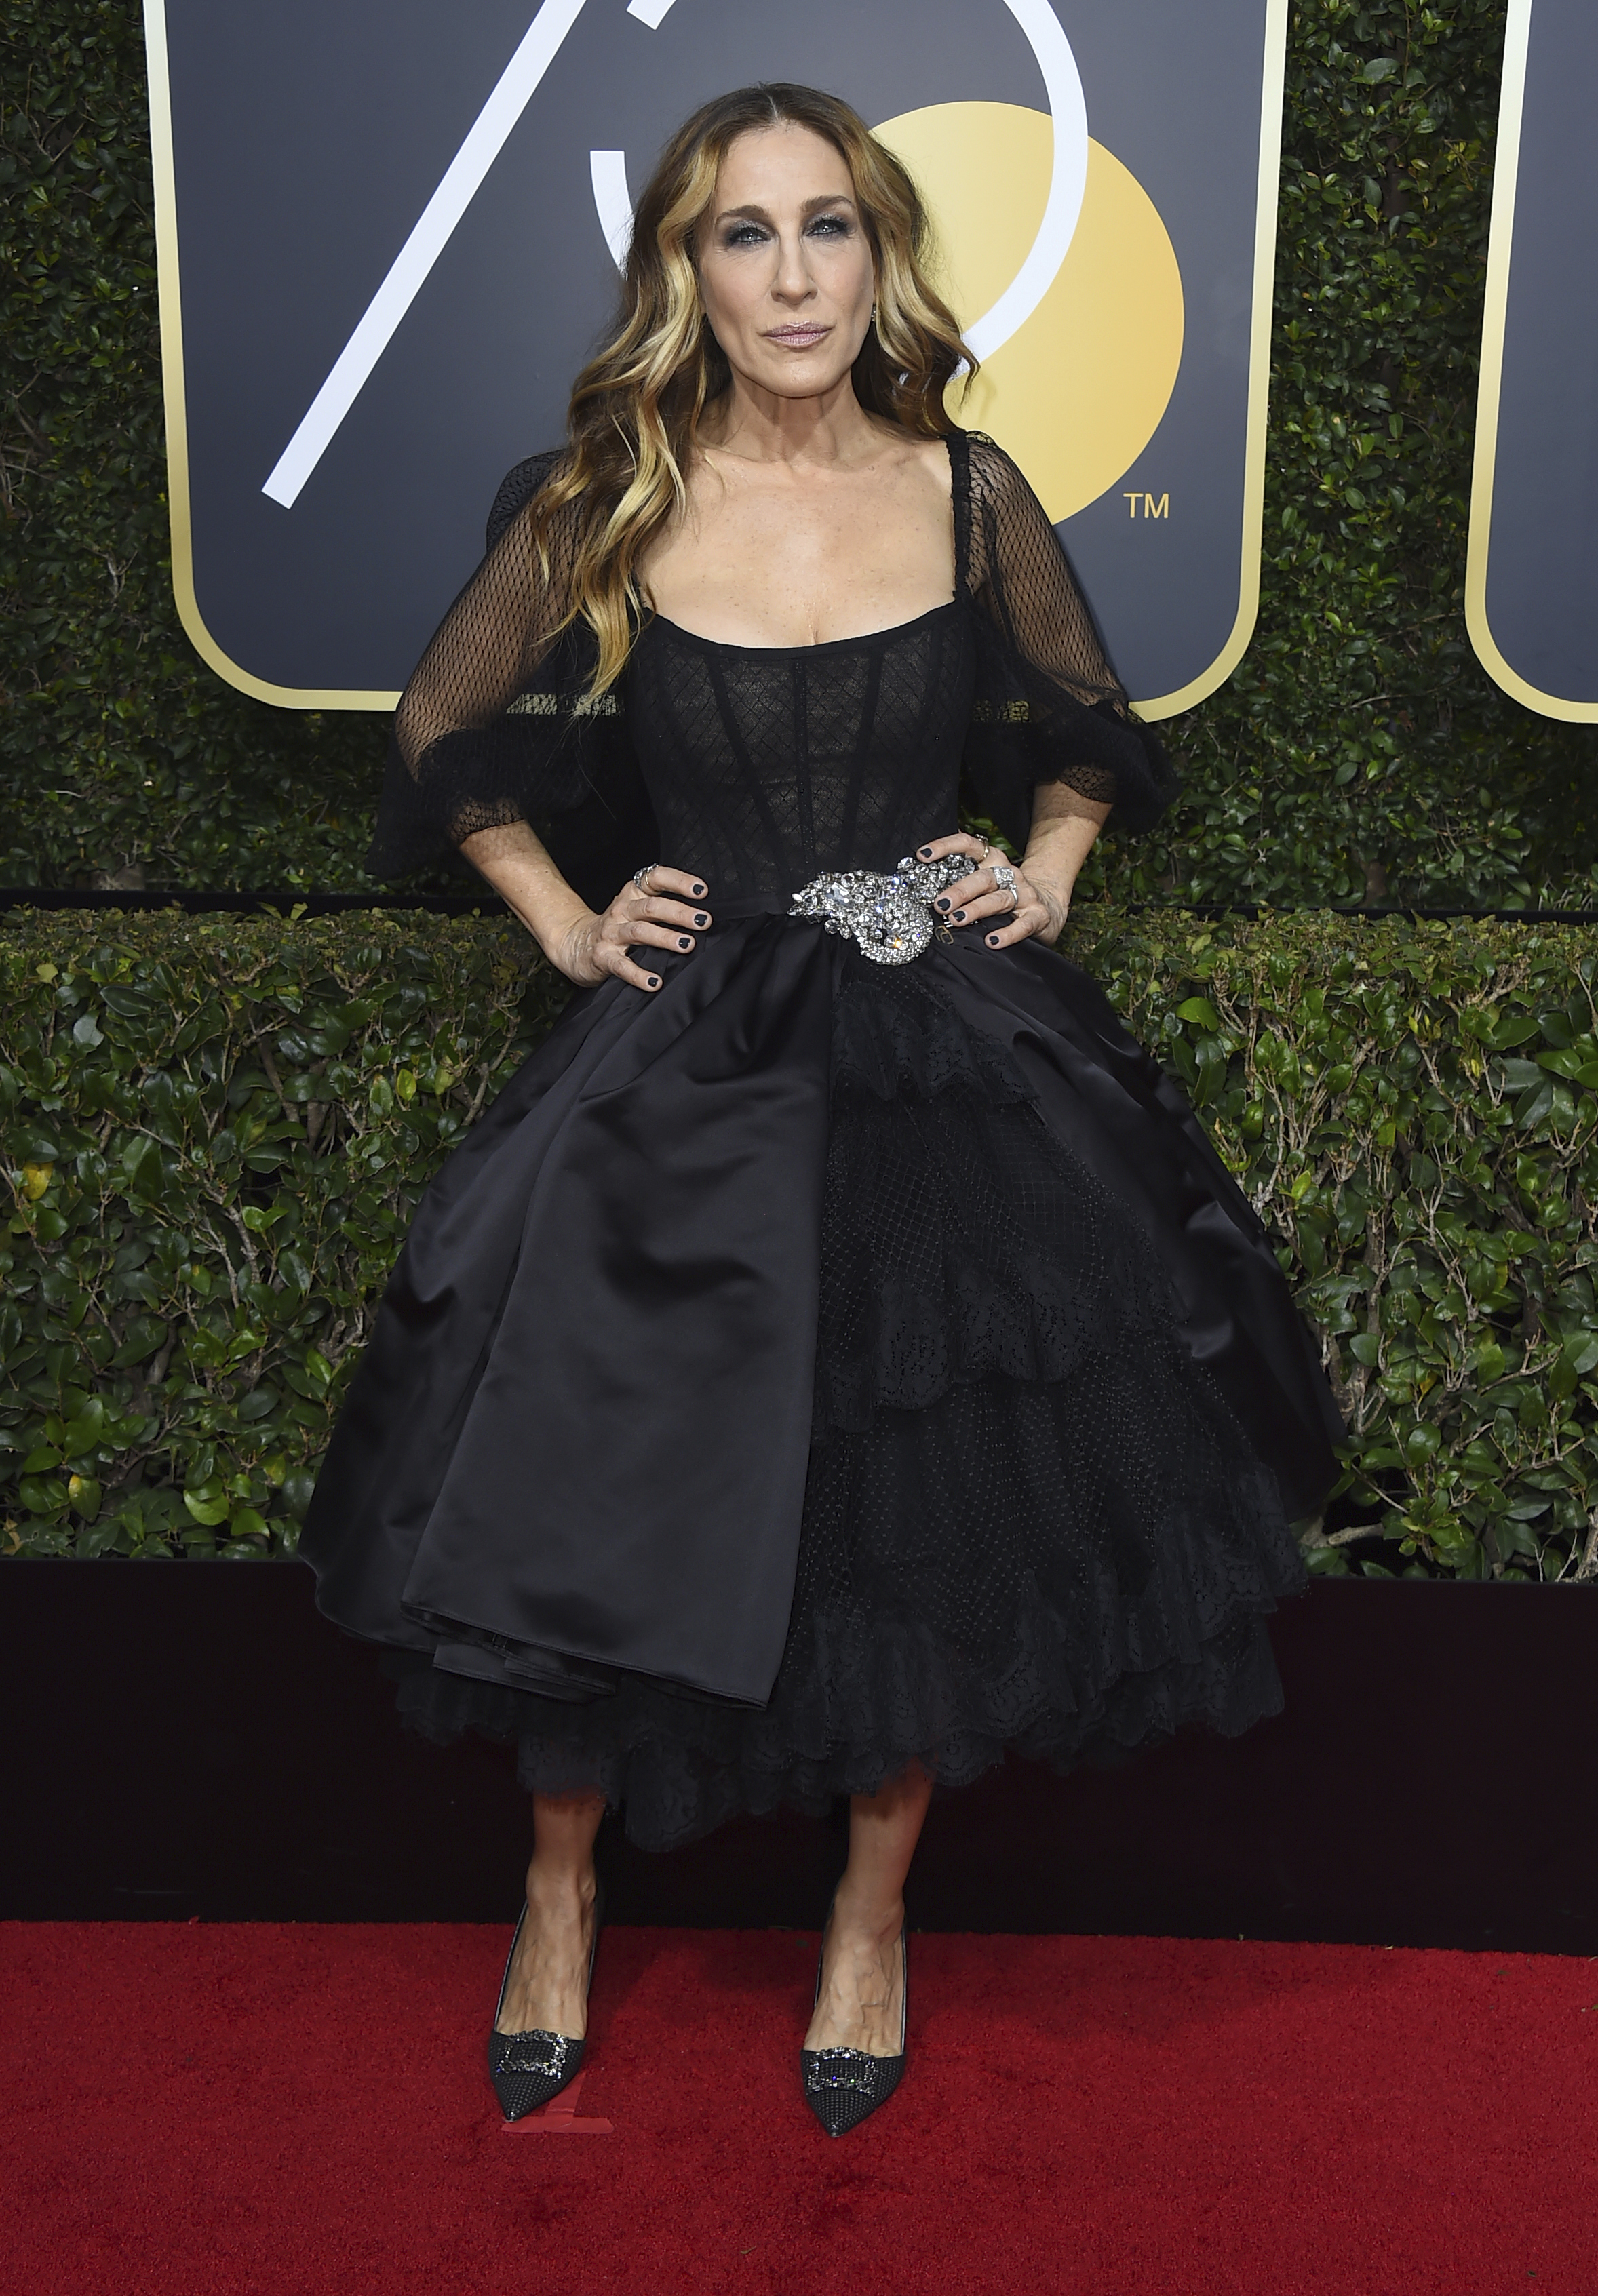 <div class='meta'><div class='origin-logo' data-origin='AP'></div><span class='caption-text' data-credit='Jordan Strauss/Invision/AP'>Sarah Jessica Parker arrives at the 75th annual Golden Globe Awards at the Beverly Hilton Hotel on Sunday, Jan. 7, 2018, in Beverly Hills, Calif.</span></div>